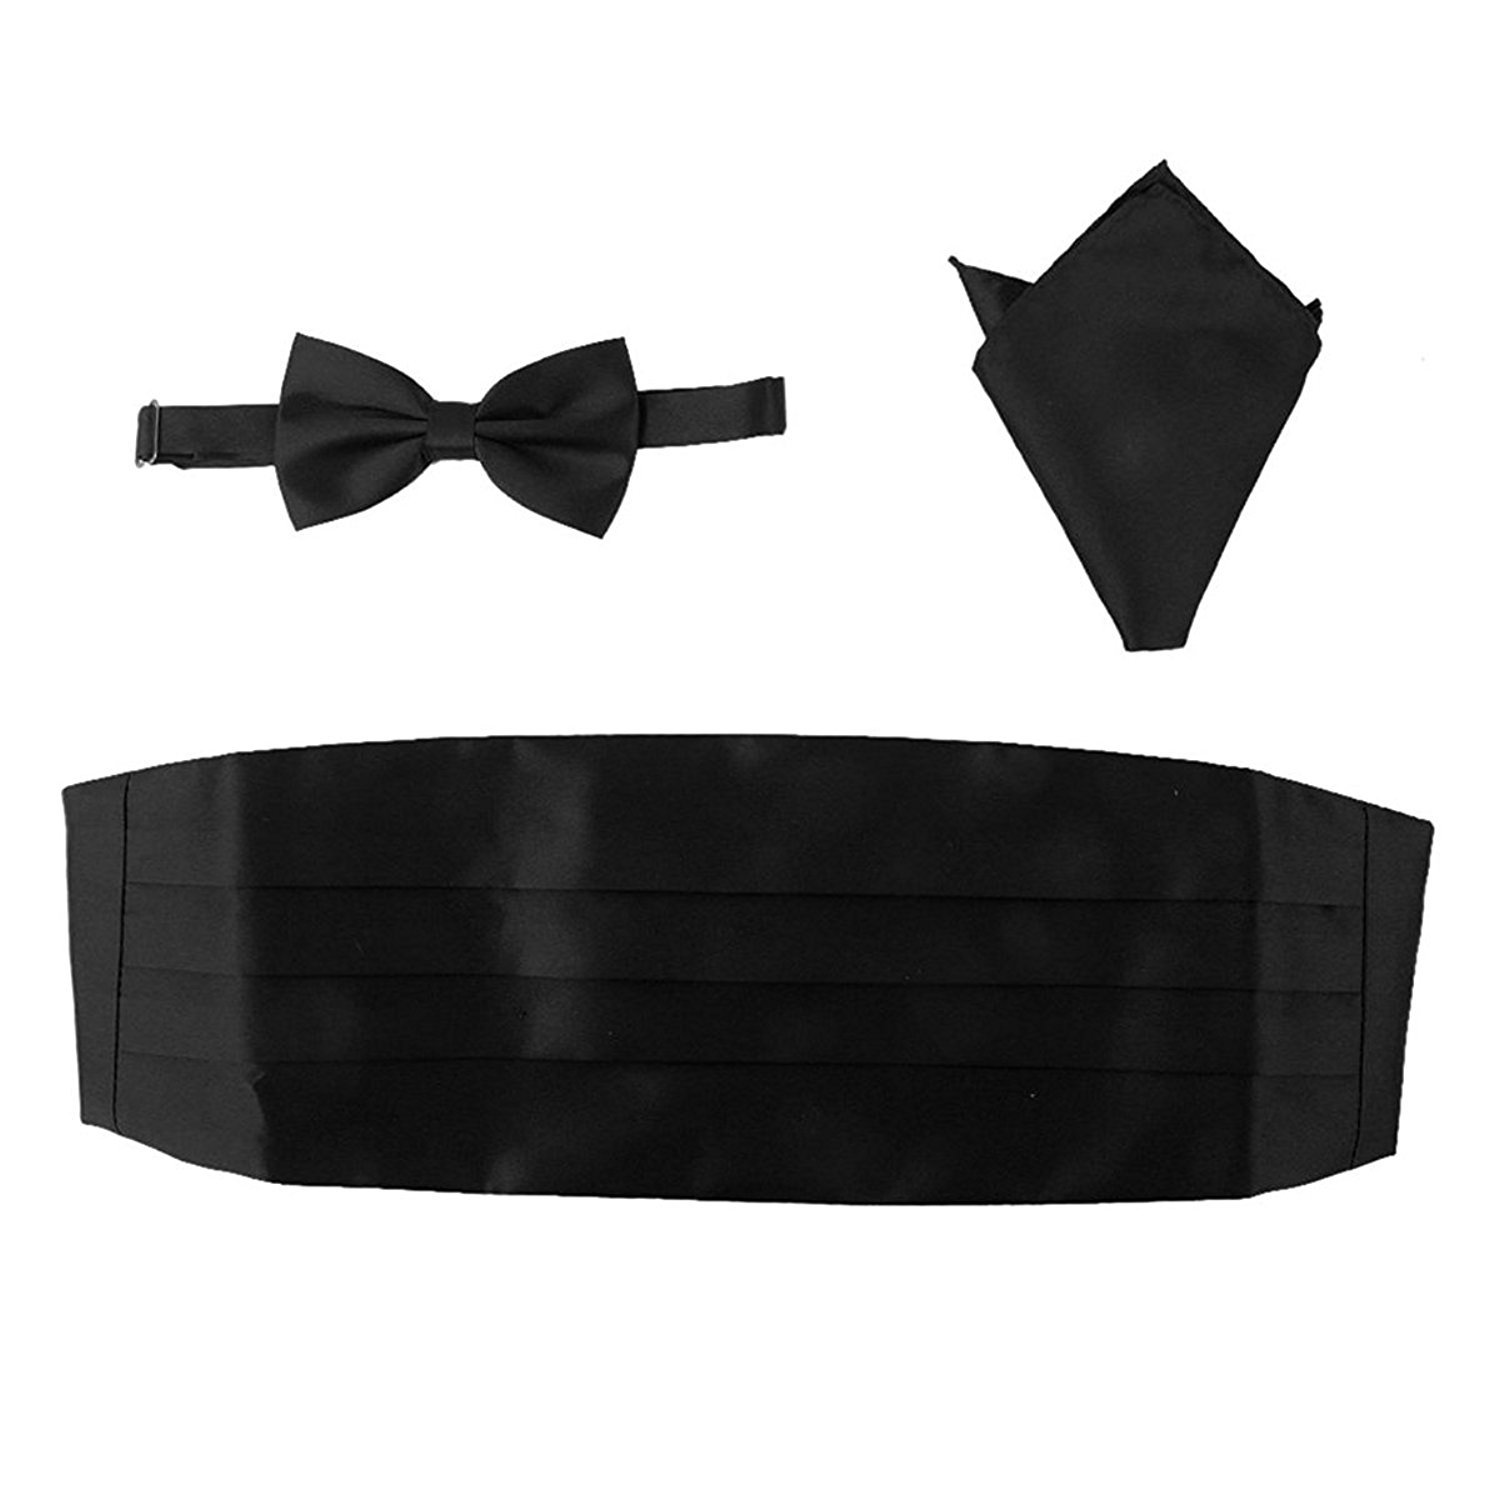 WINOMO Men Satin Bow Tie Cummerbund Handkerchief Pocket Square Hanky Black Set of 3 K160604DLNXE5256